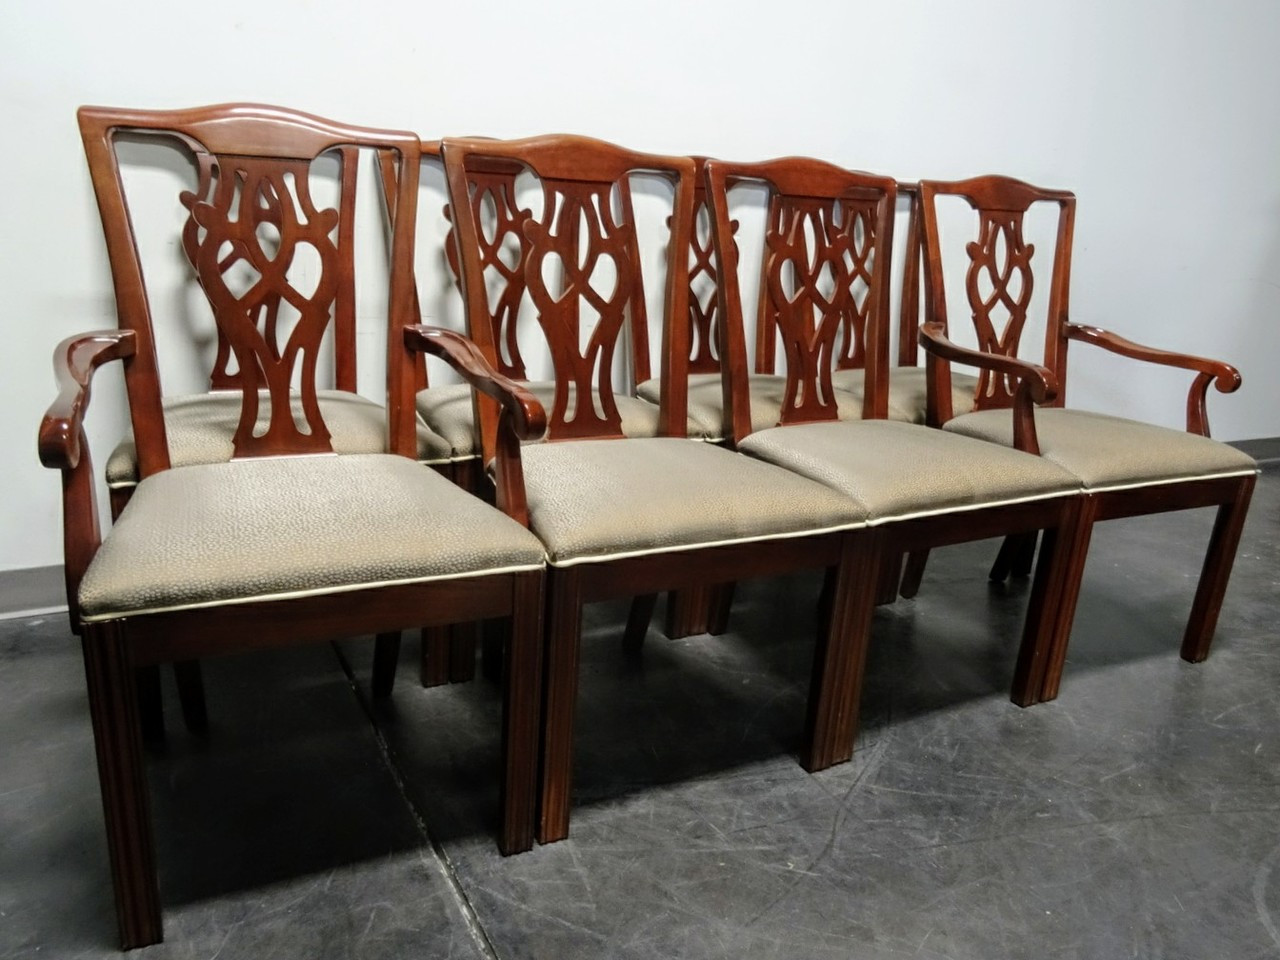 SOLD OUT DREXEL Chippendale Straight Leg Mahogany Dining Chairs